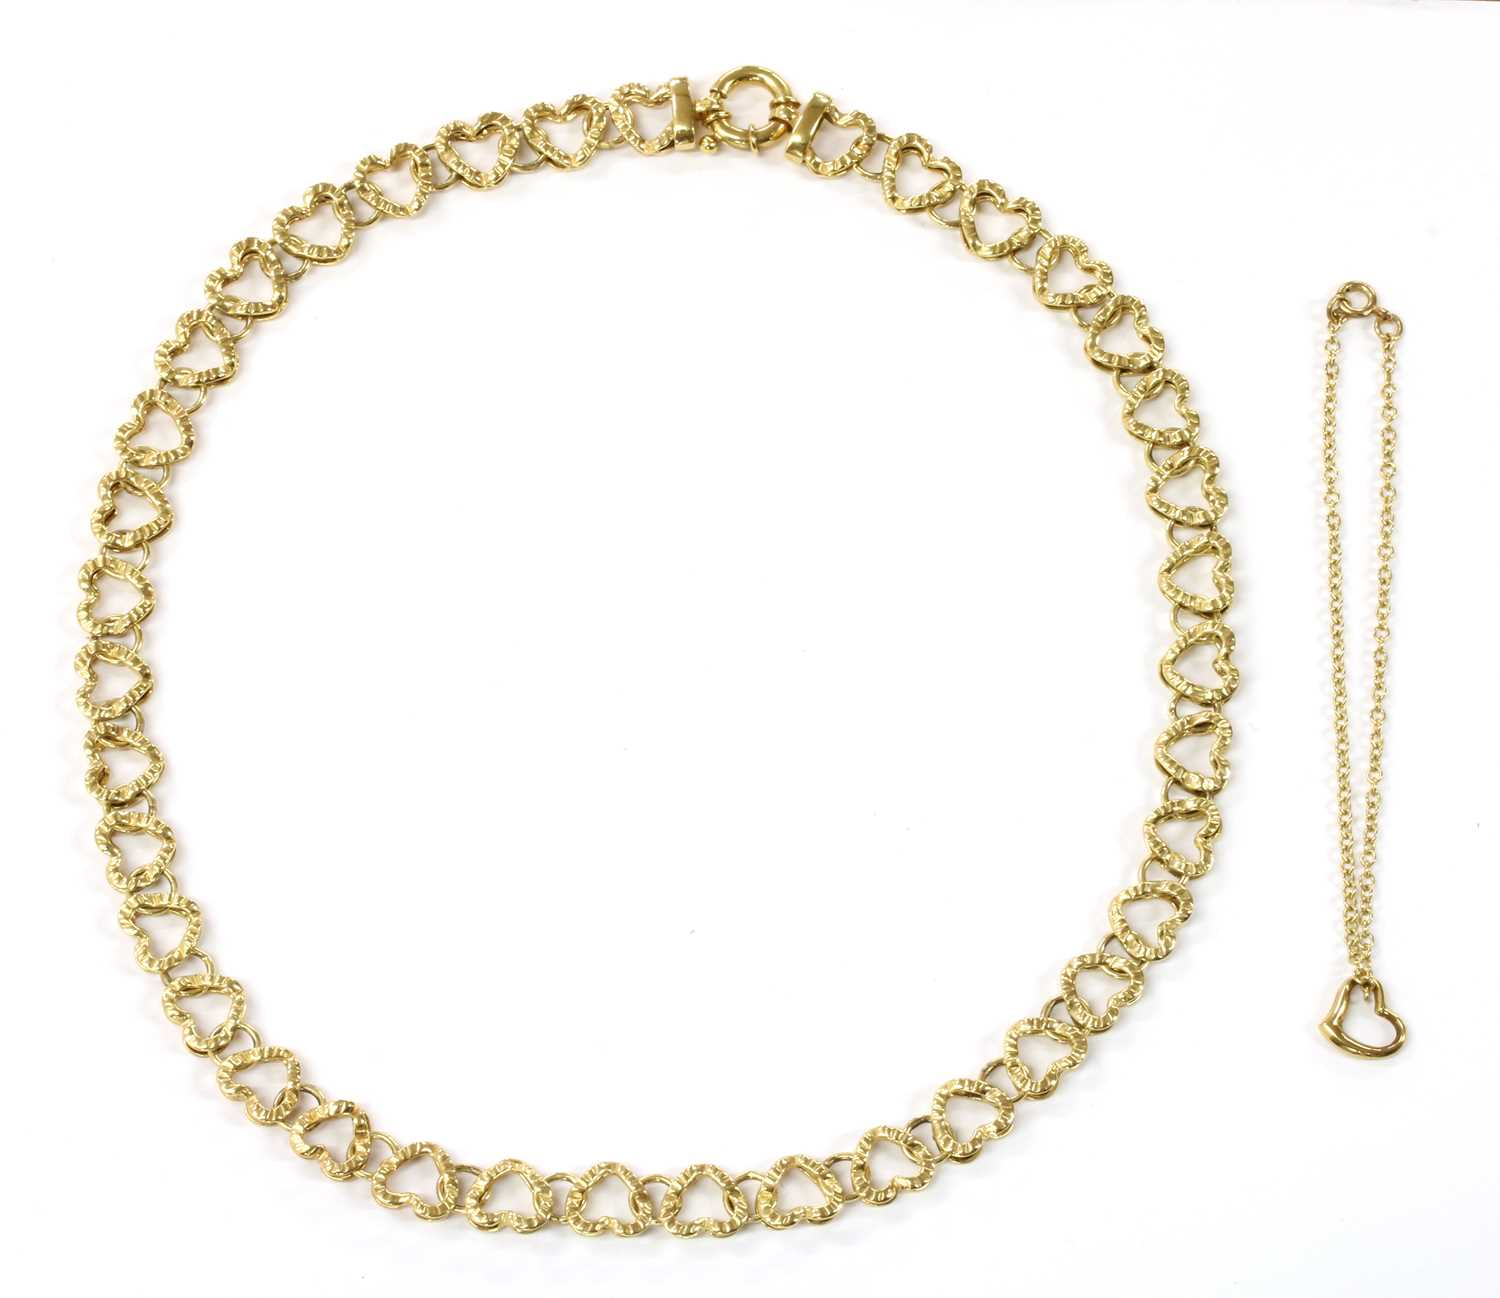 Lot 71 - A 9ct gold hollow heart shaped link necklace